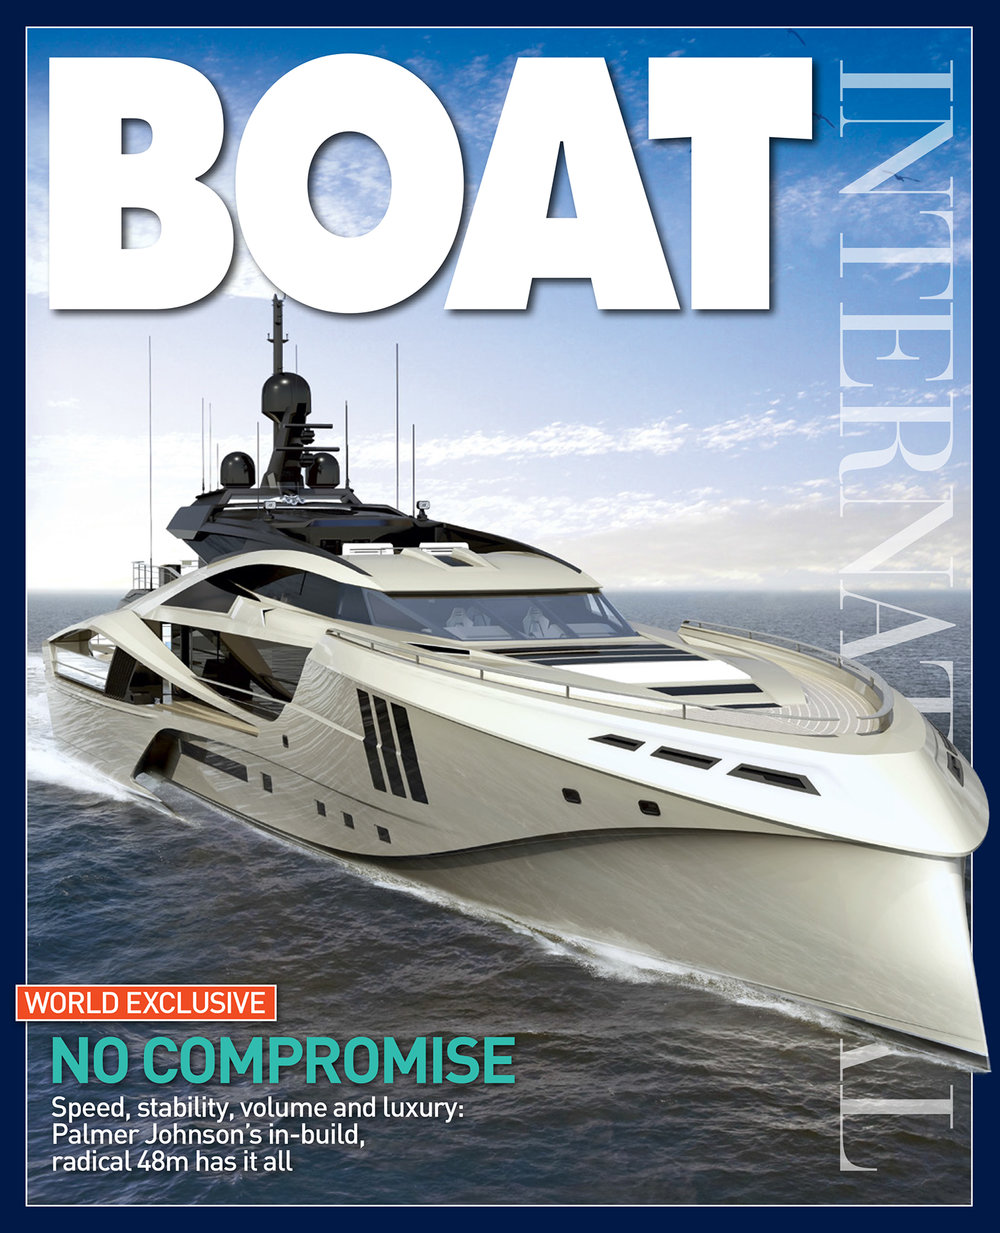 PJ Boat International Cover.jpg